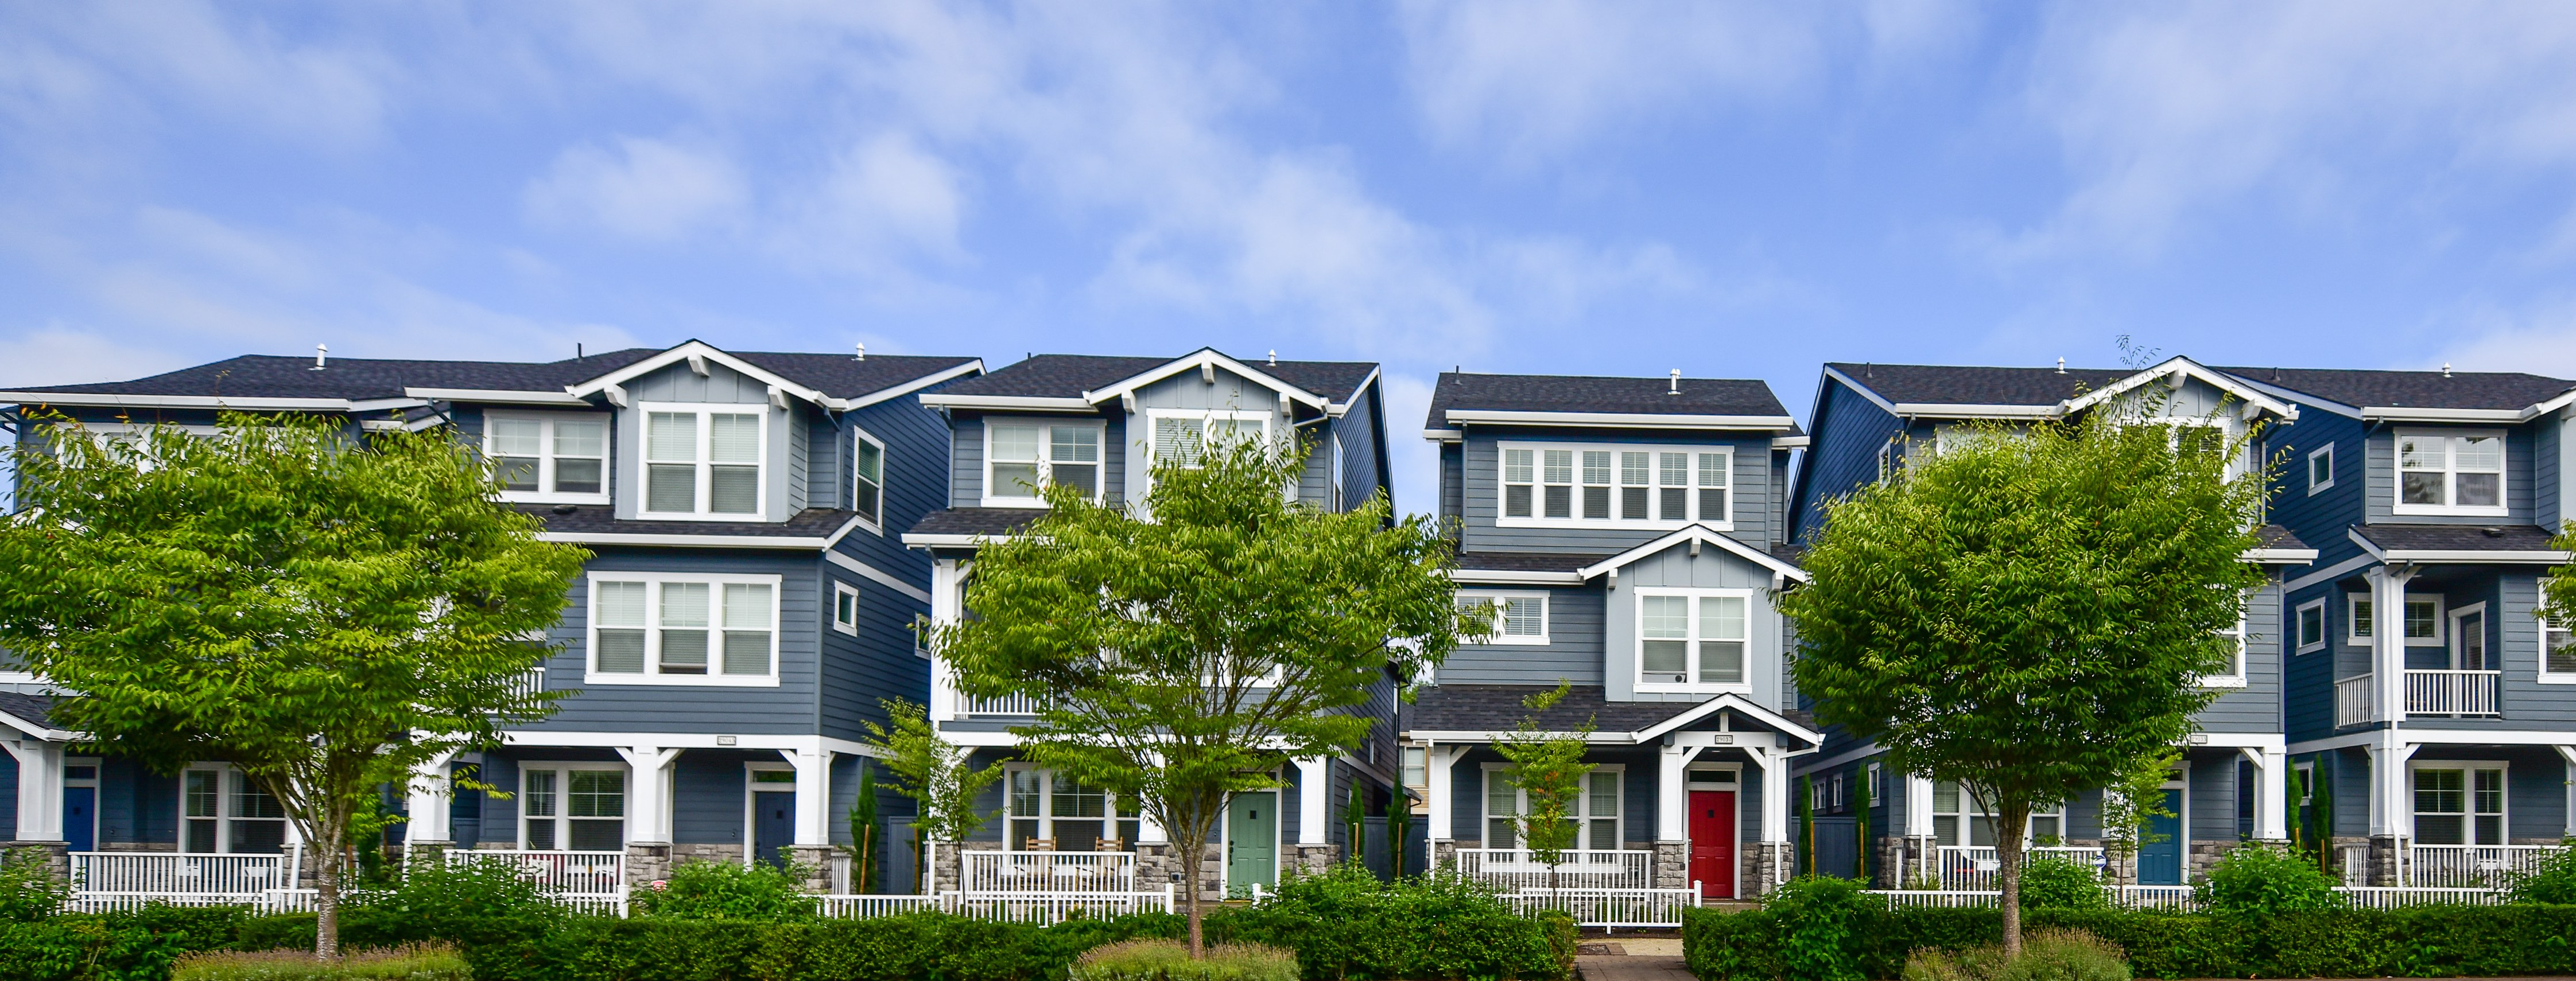 Row of Townhomes in Villebois Wilsonville, OR